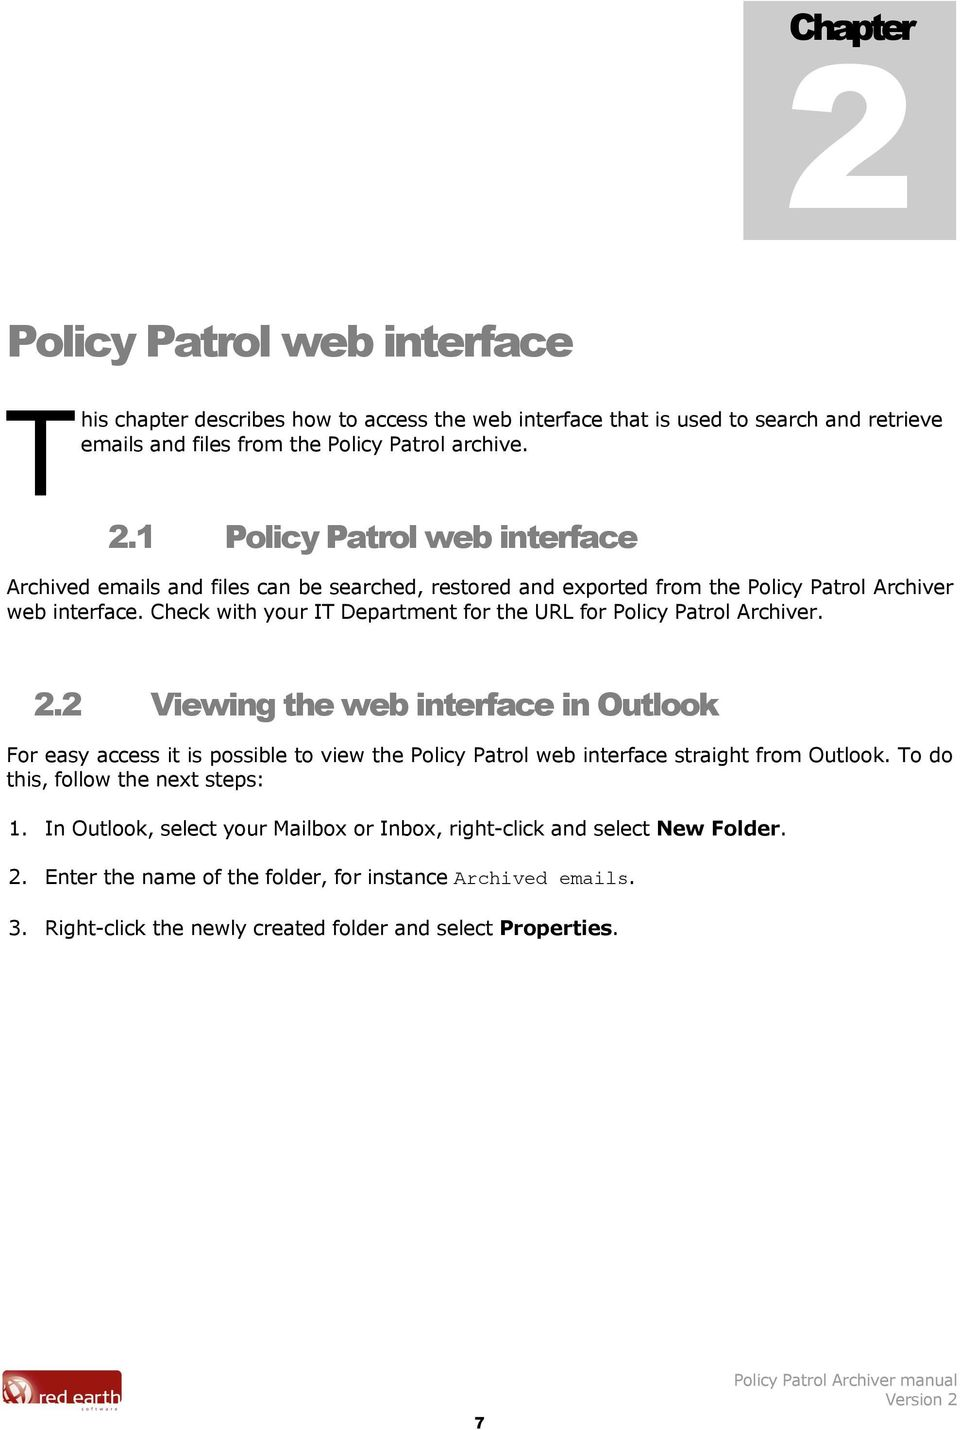 2 Viewing the web interface in Outlook For easy access it is possible to view the Policy Patrol web interface straight from Outlook. To do this, follow the next steps: 1.